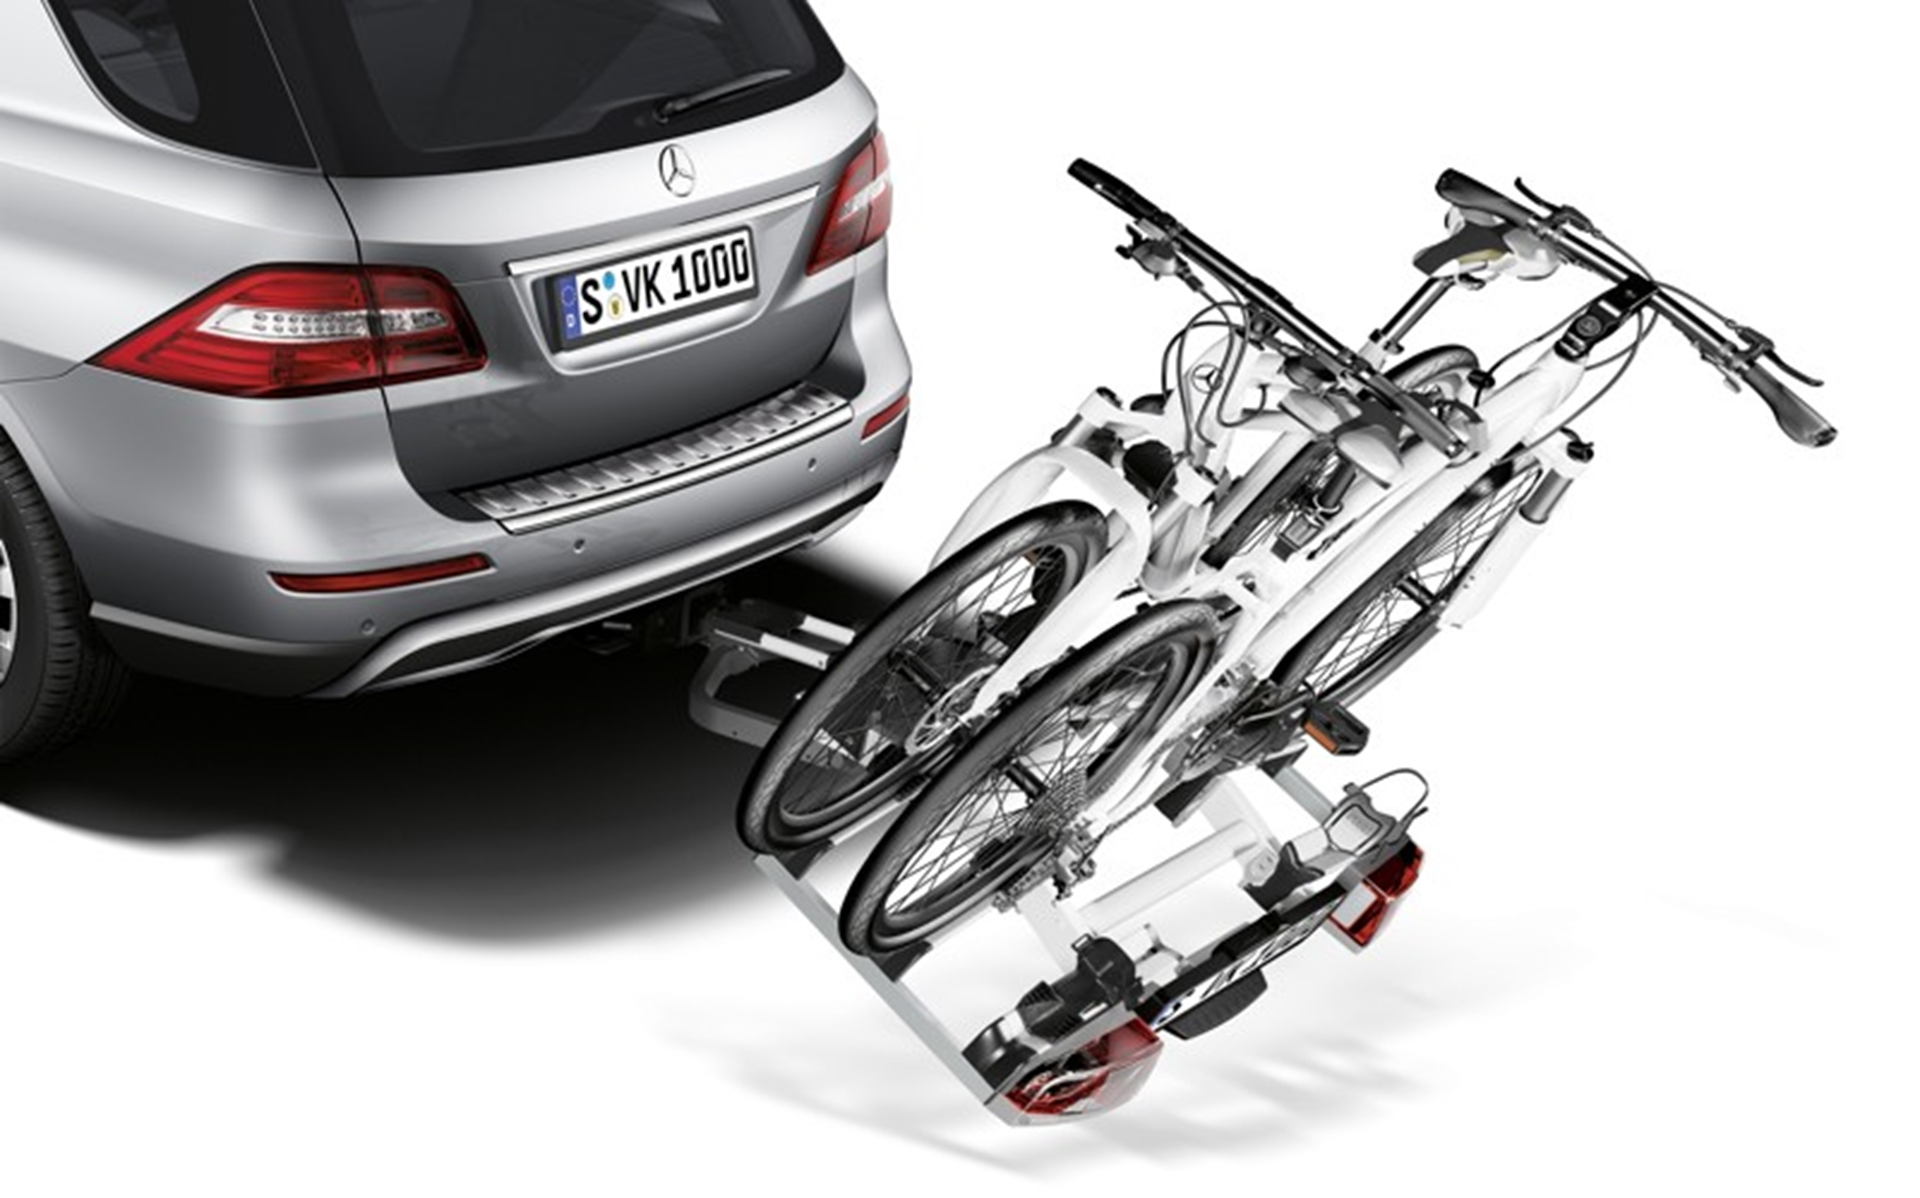 Mercedes benz new genuine accessory items for the m class for Mercedes benz bicycle rack